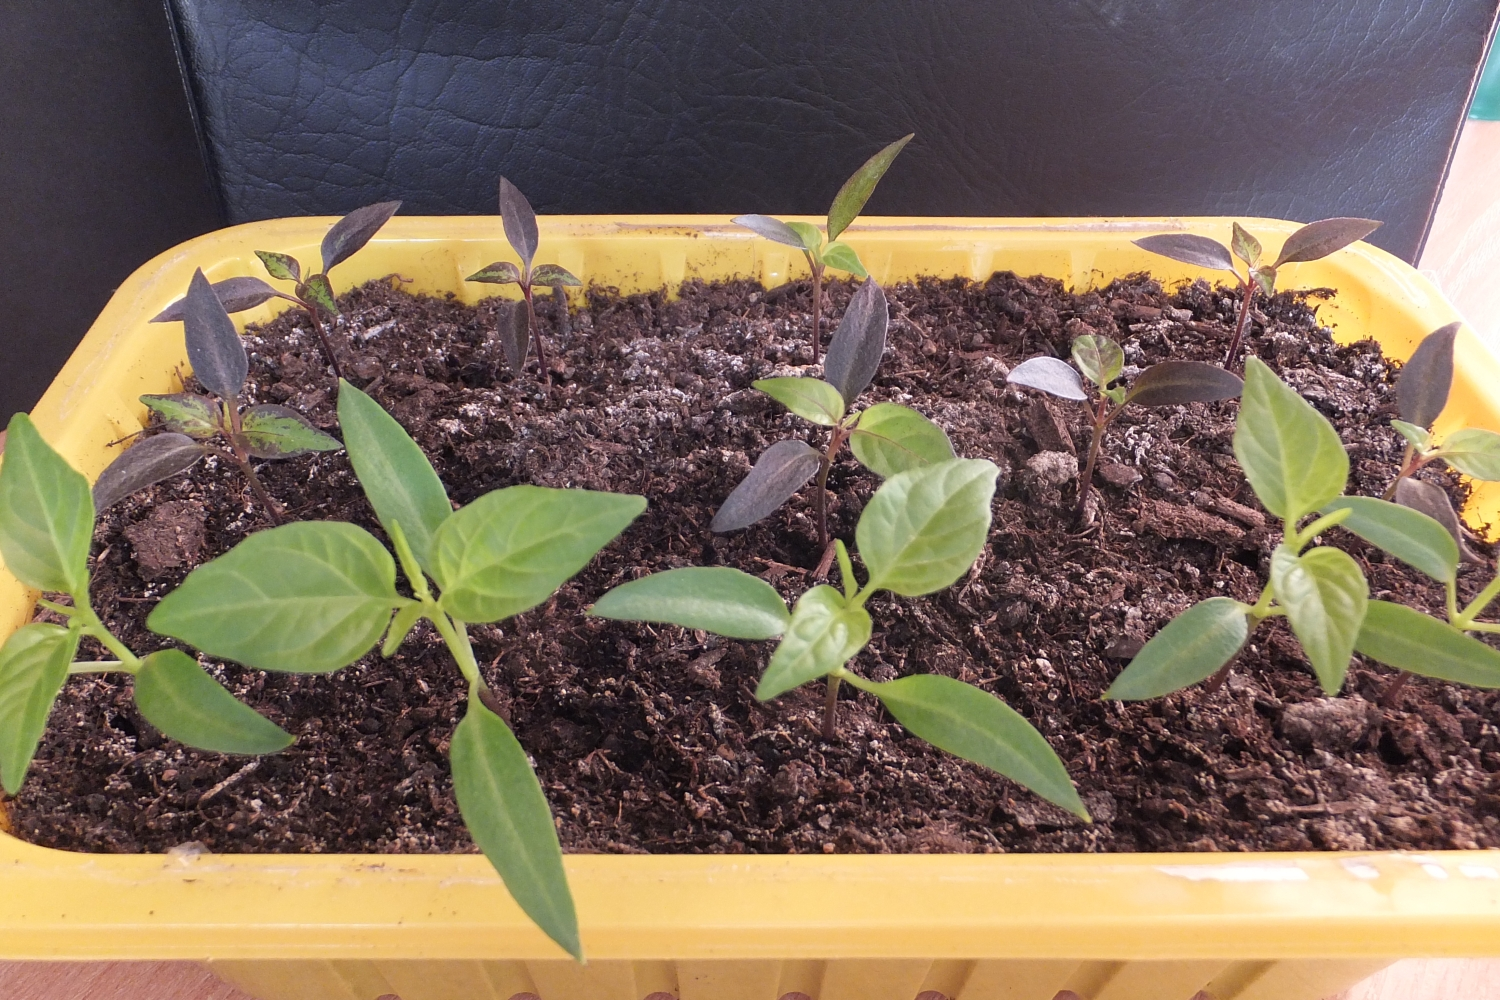 Picture of Start Seeds Indoors